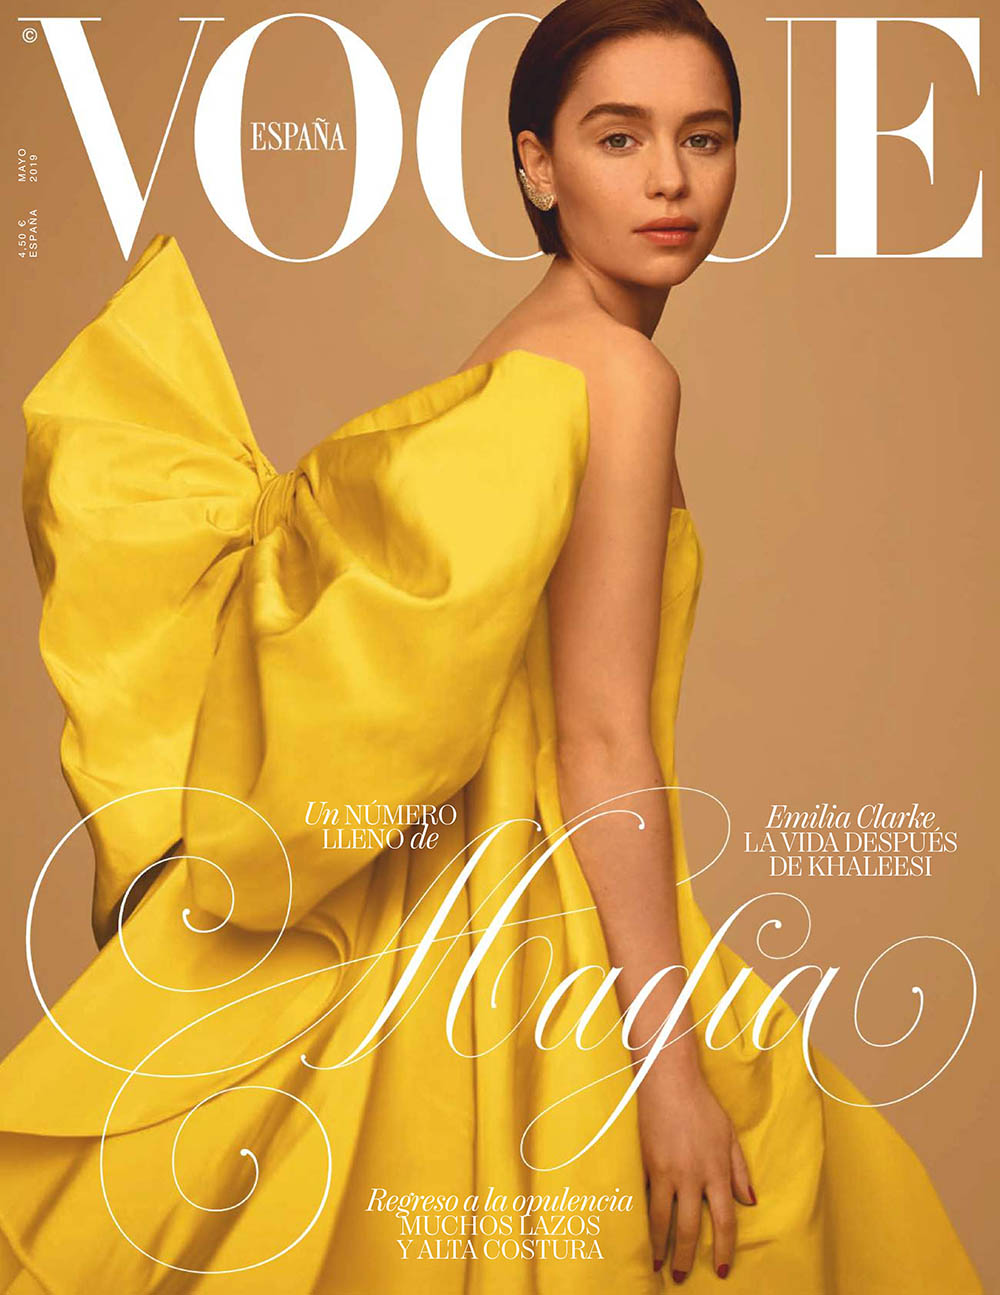 Emilia Clarke covers Vogue Spain May 2019 by Thomas Whiteside